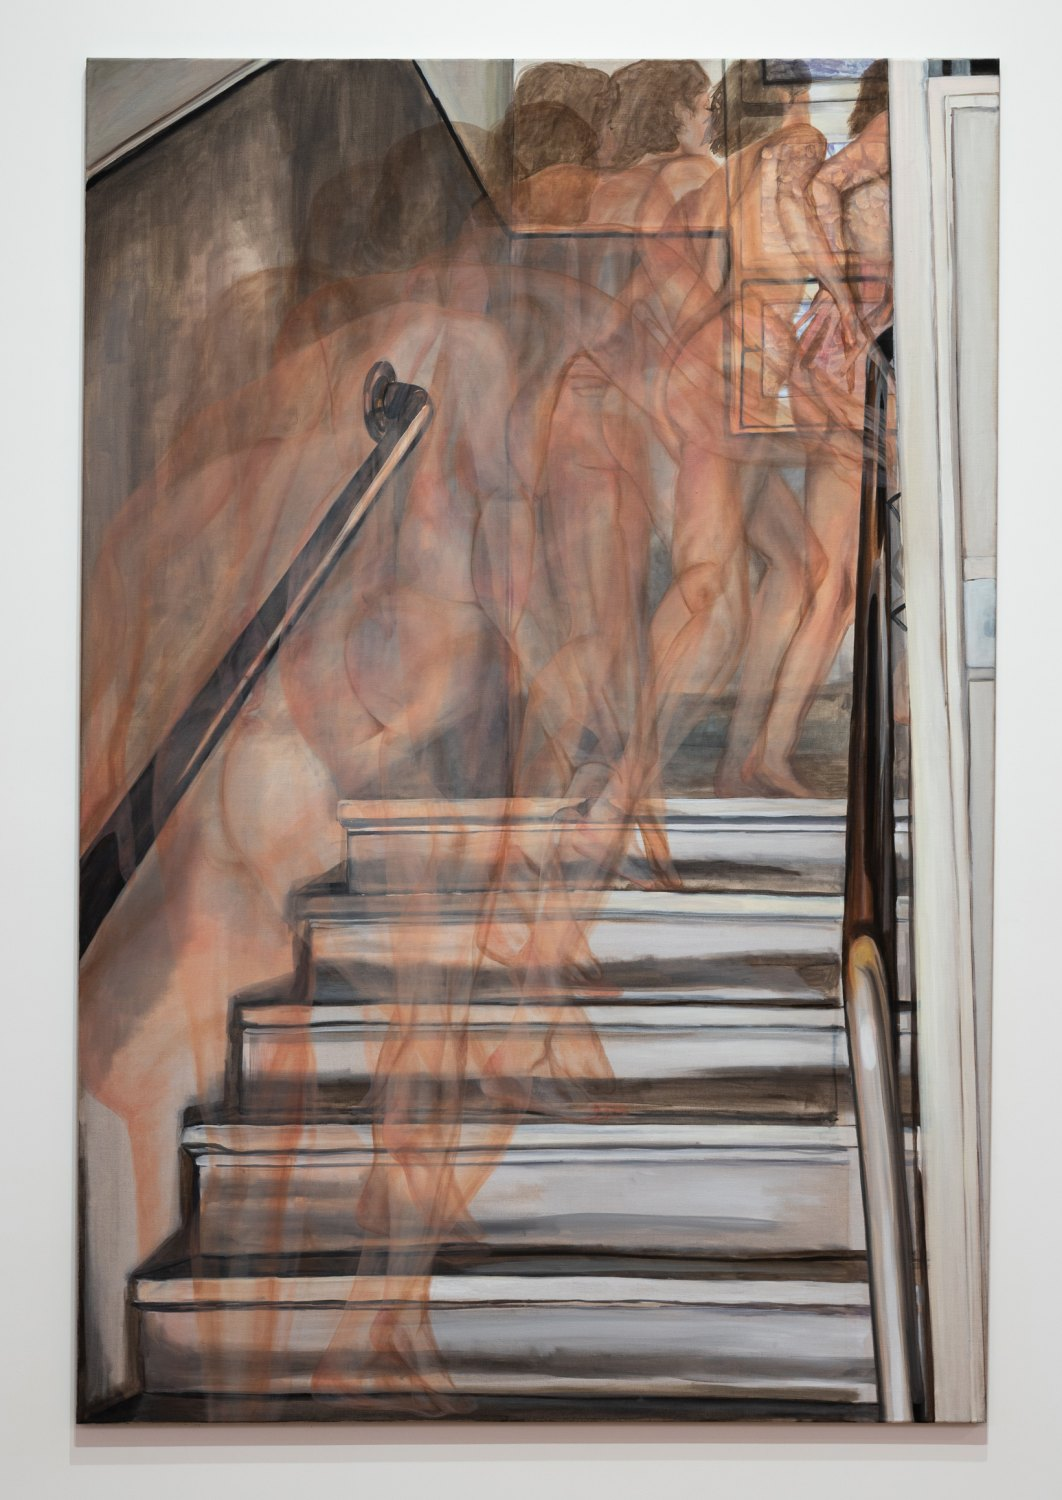 Jana Euler Nude Climbing Up the Stairs, 2014 Oil on canvas, 180 x 120 cm